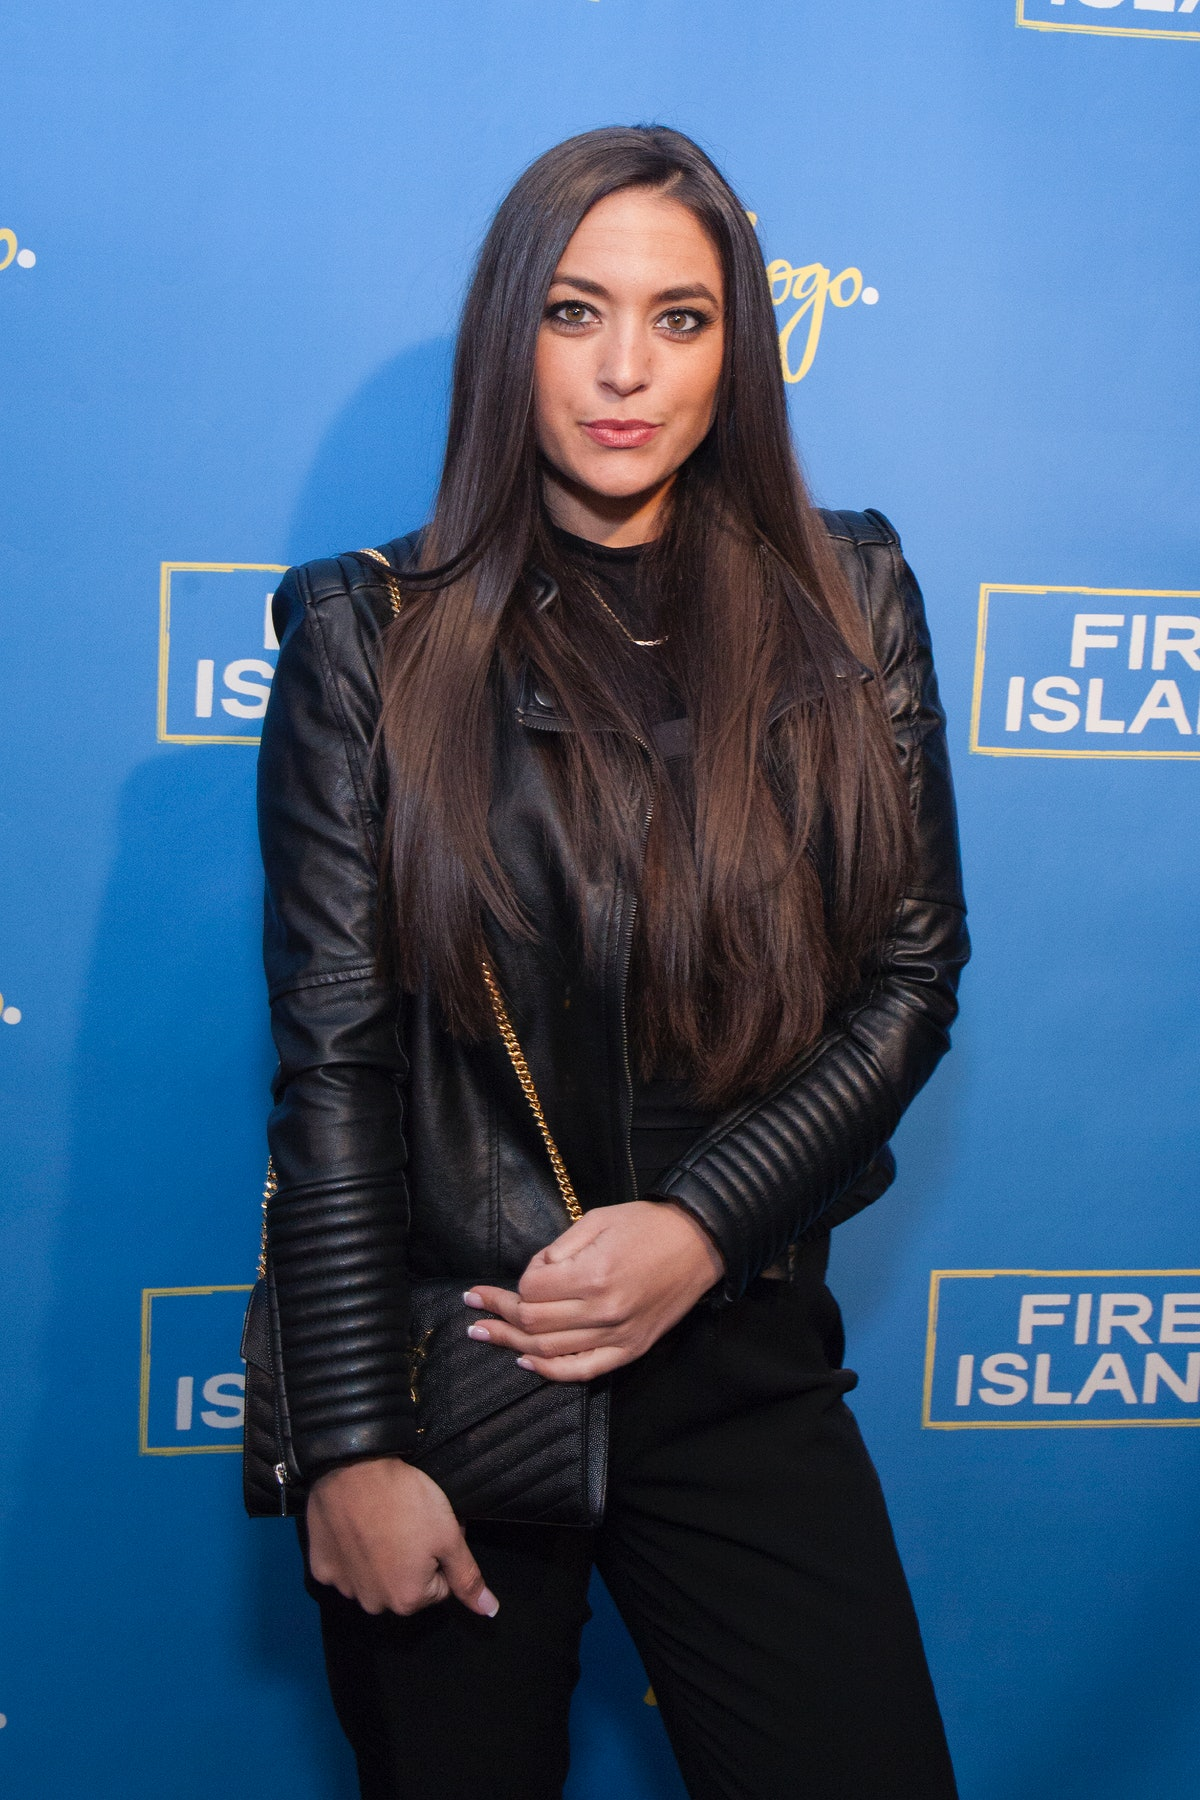 Sammi Giancola confirmed the end of her engagement to Christian Biscardi on TikTok.